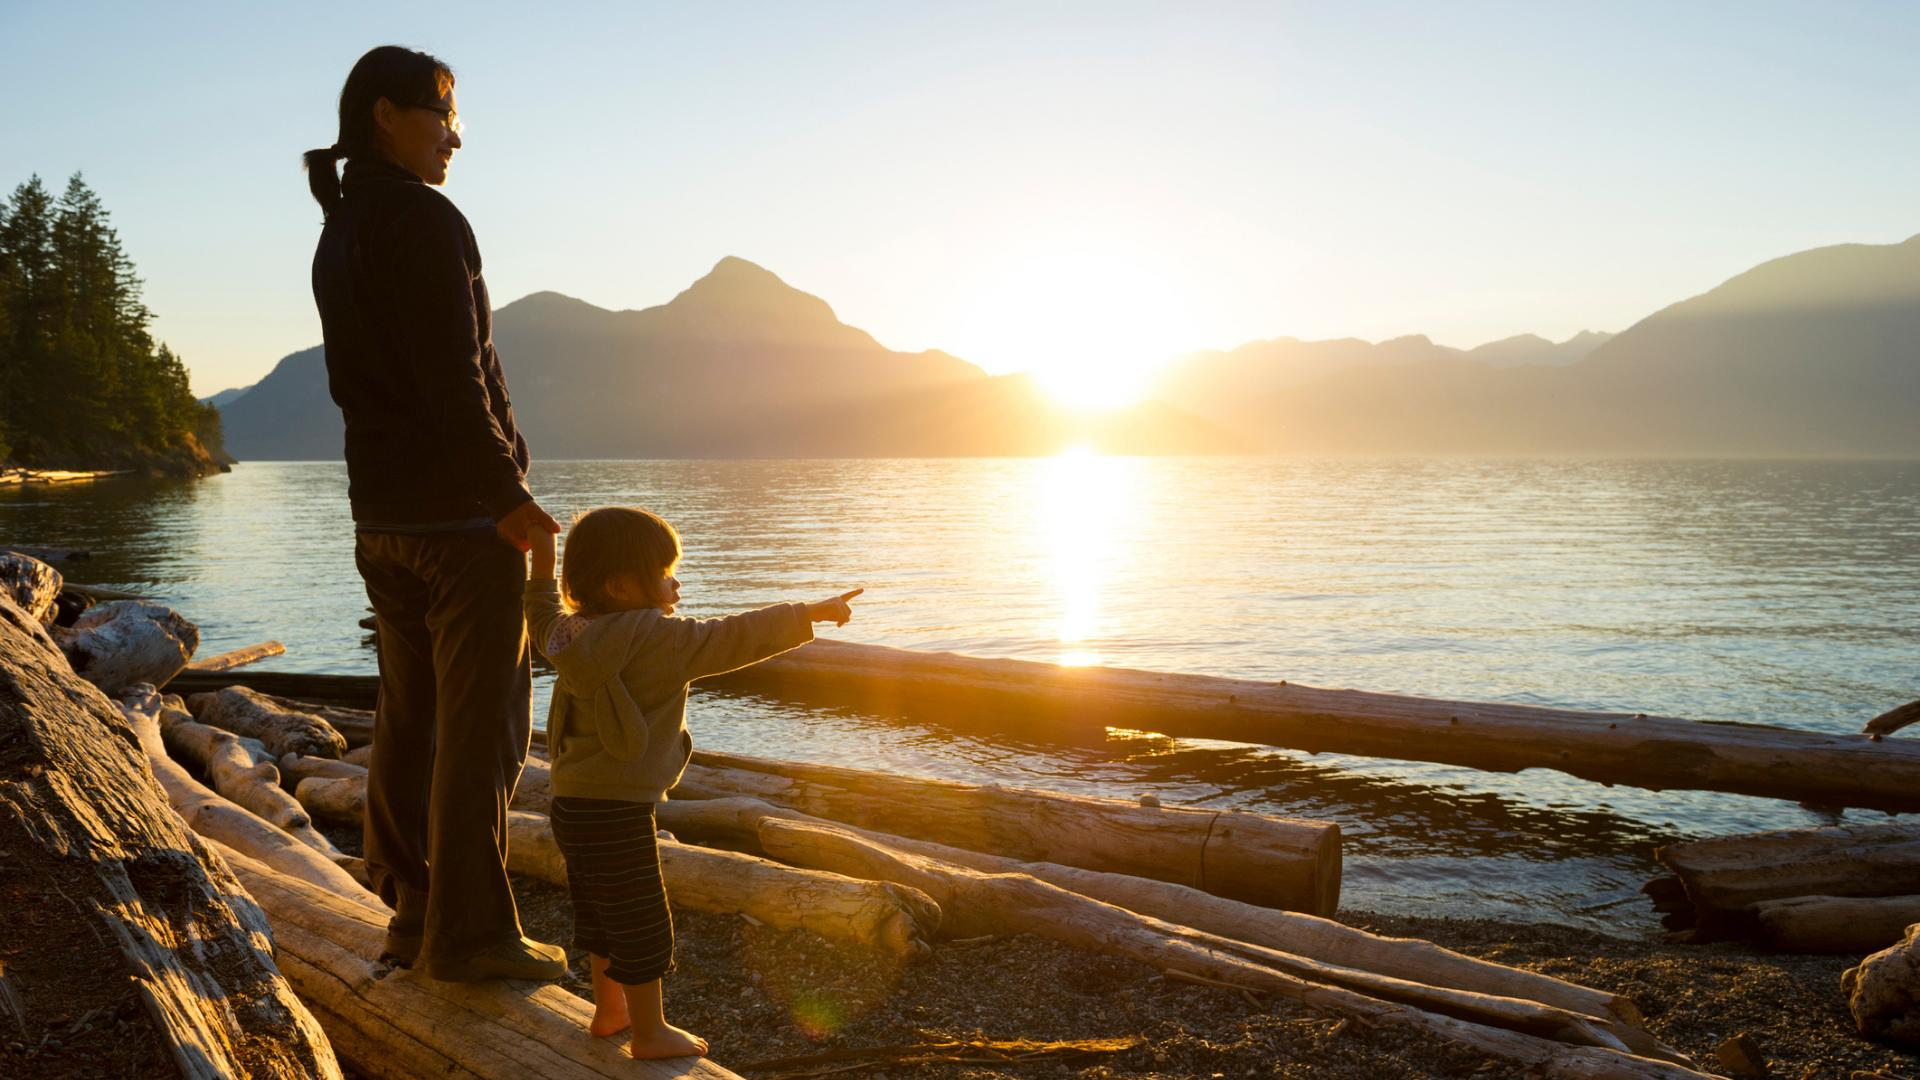 Woman and Child at a Beach in British Columbia